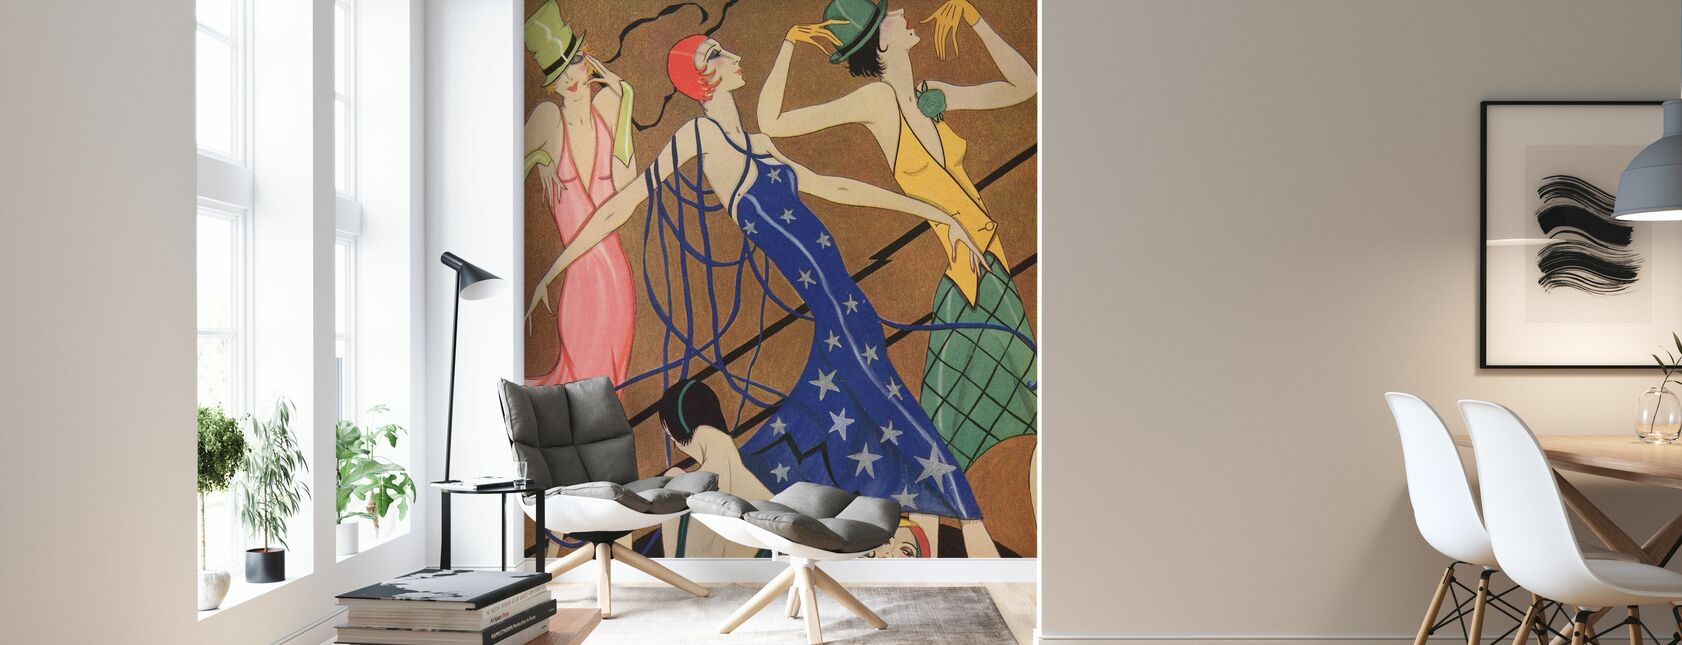 Models in Party Dresses, Gordon Conway - Wallpaper - Living Room